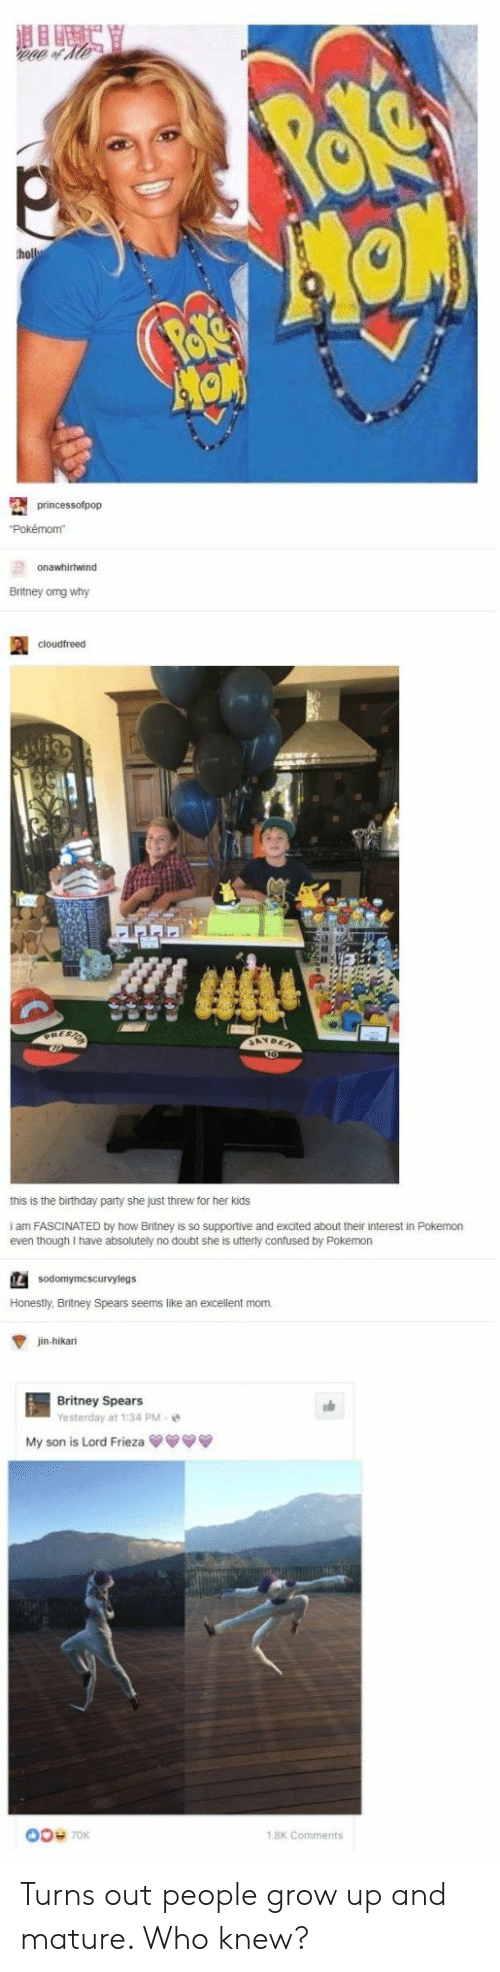 Omg Why: ho  Britney omg why  this is the birthday party she just threw for her kids  i am FASCINATED by how Britney is so supportive and excited about their interest in Pokemon  even though I have absolutely no doubt she is utterly confused by Pokemon  IL  Honestly, Britney Spears seems like an excellent mom  jin-hikani  Britney Spears  Yesterday at 1:34 PM-e  My son is Lord Frieza  00 70K  1.8K Comments Turns out people grow up and mature. Who knew?